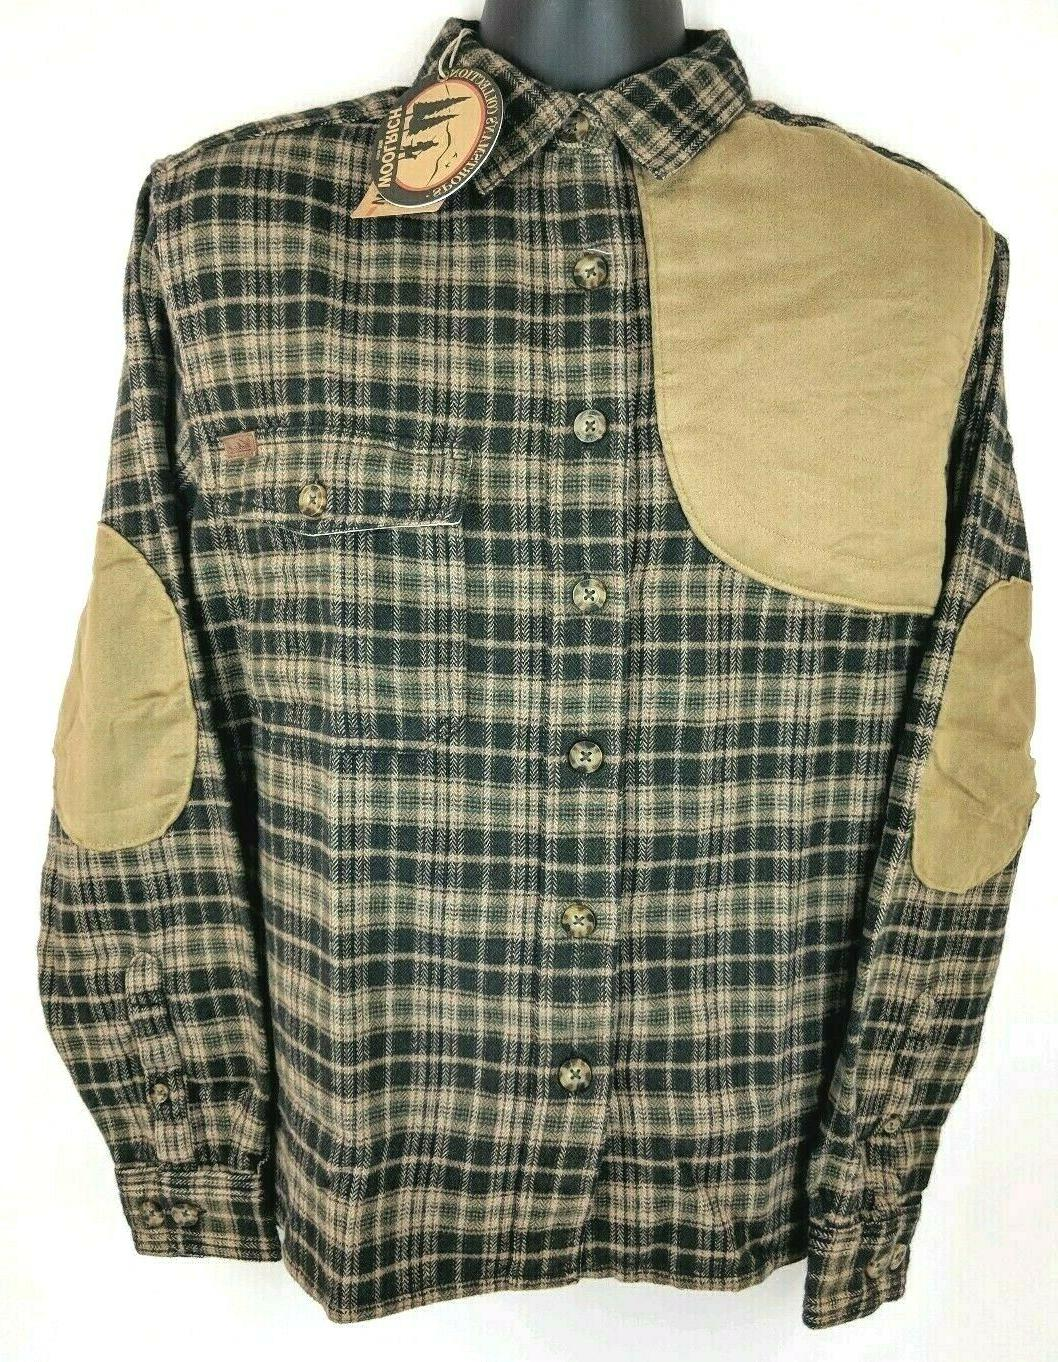 new flannel plaid shooting padded hunting long